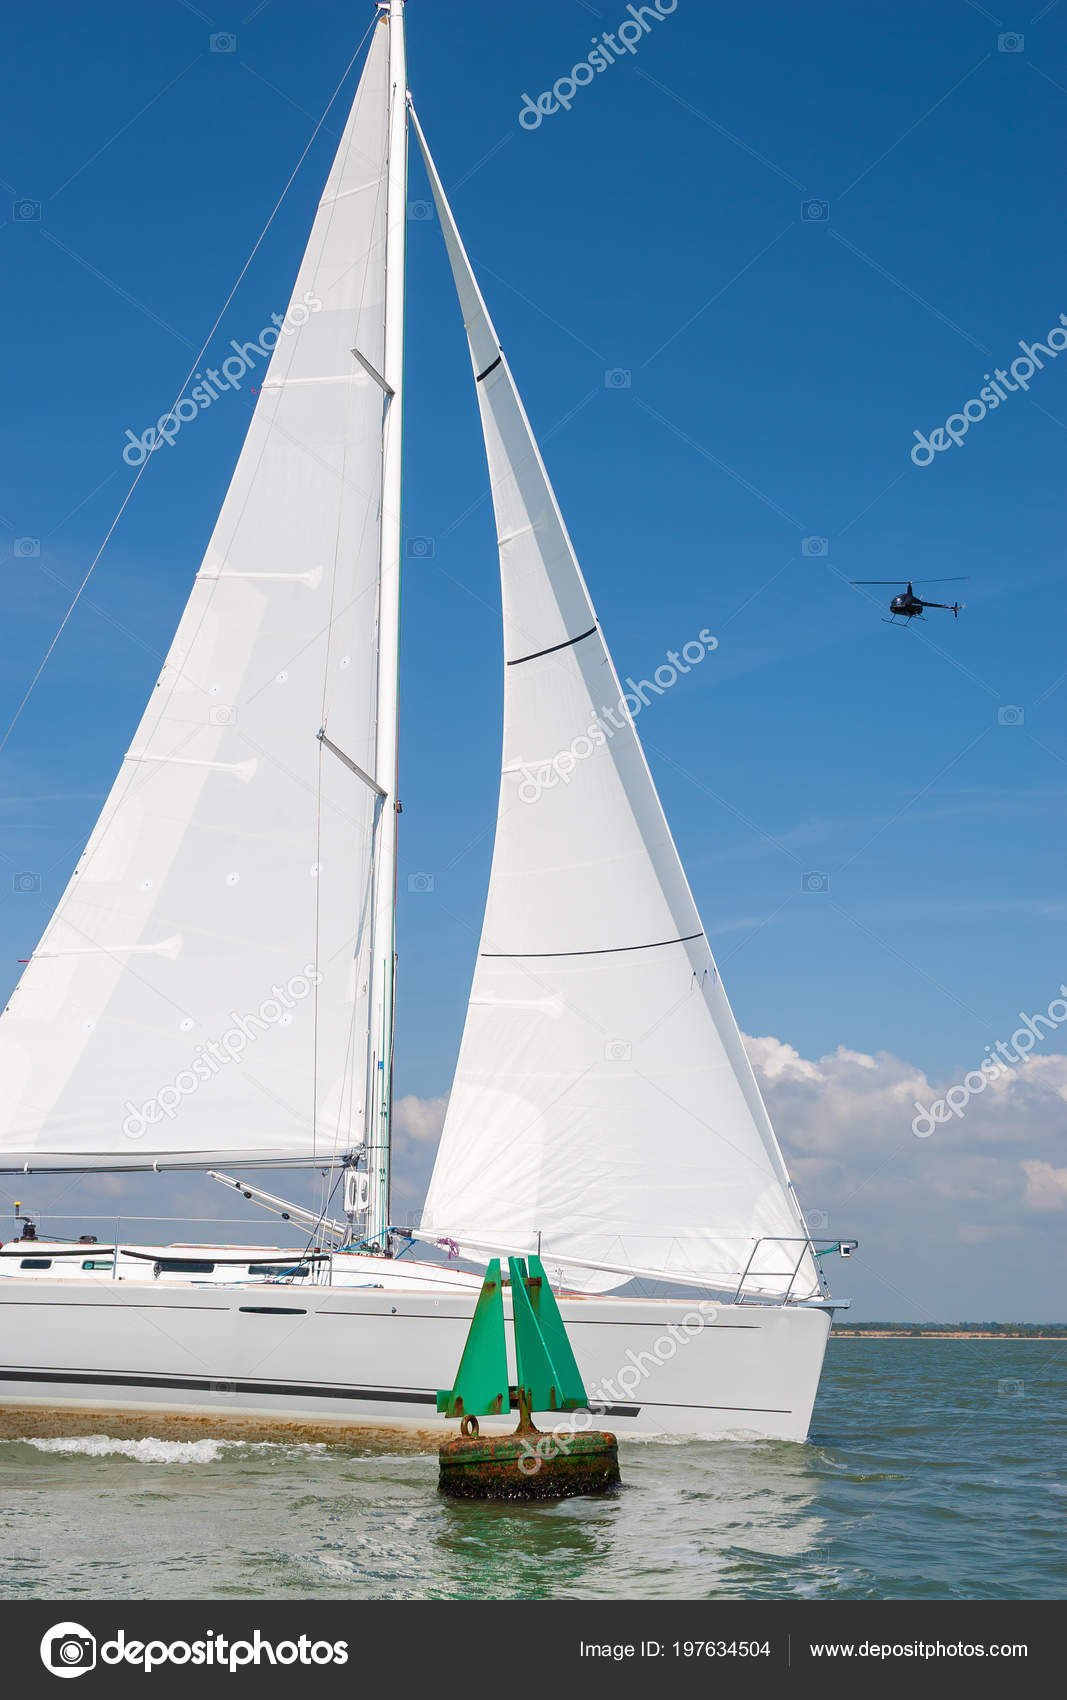 Sailing Boat Sail Boat Yacht White Sails Passing Green Navigation